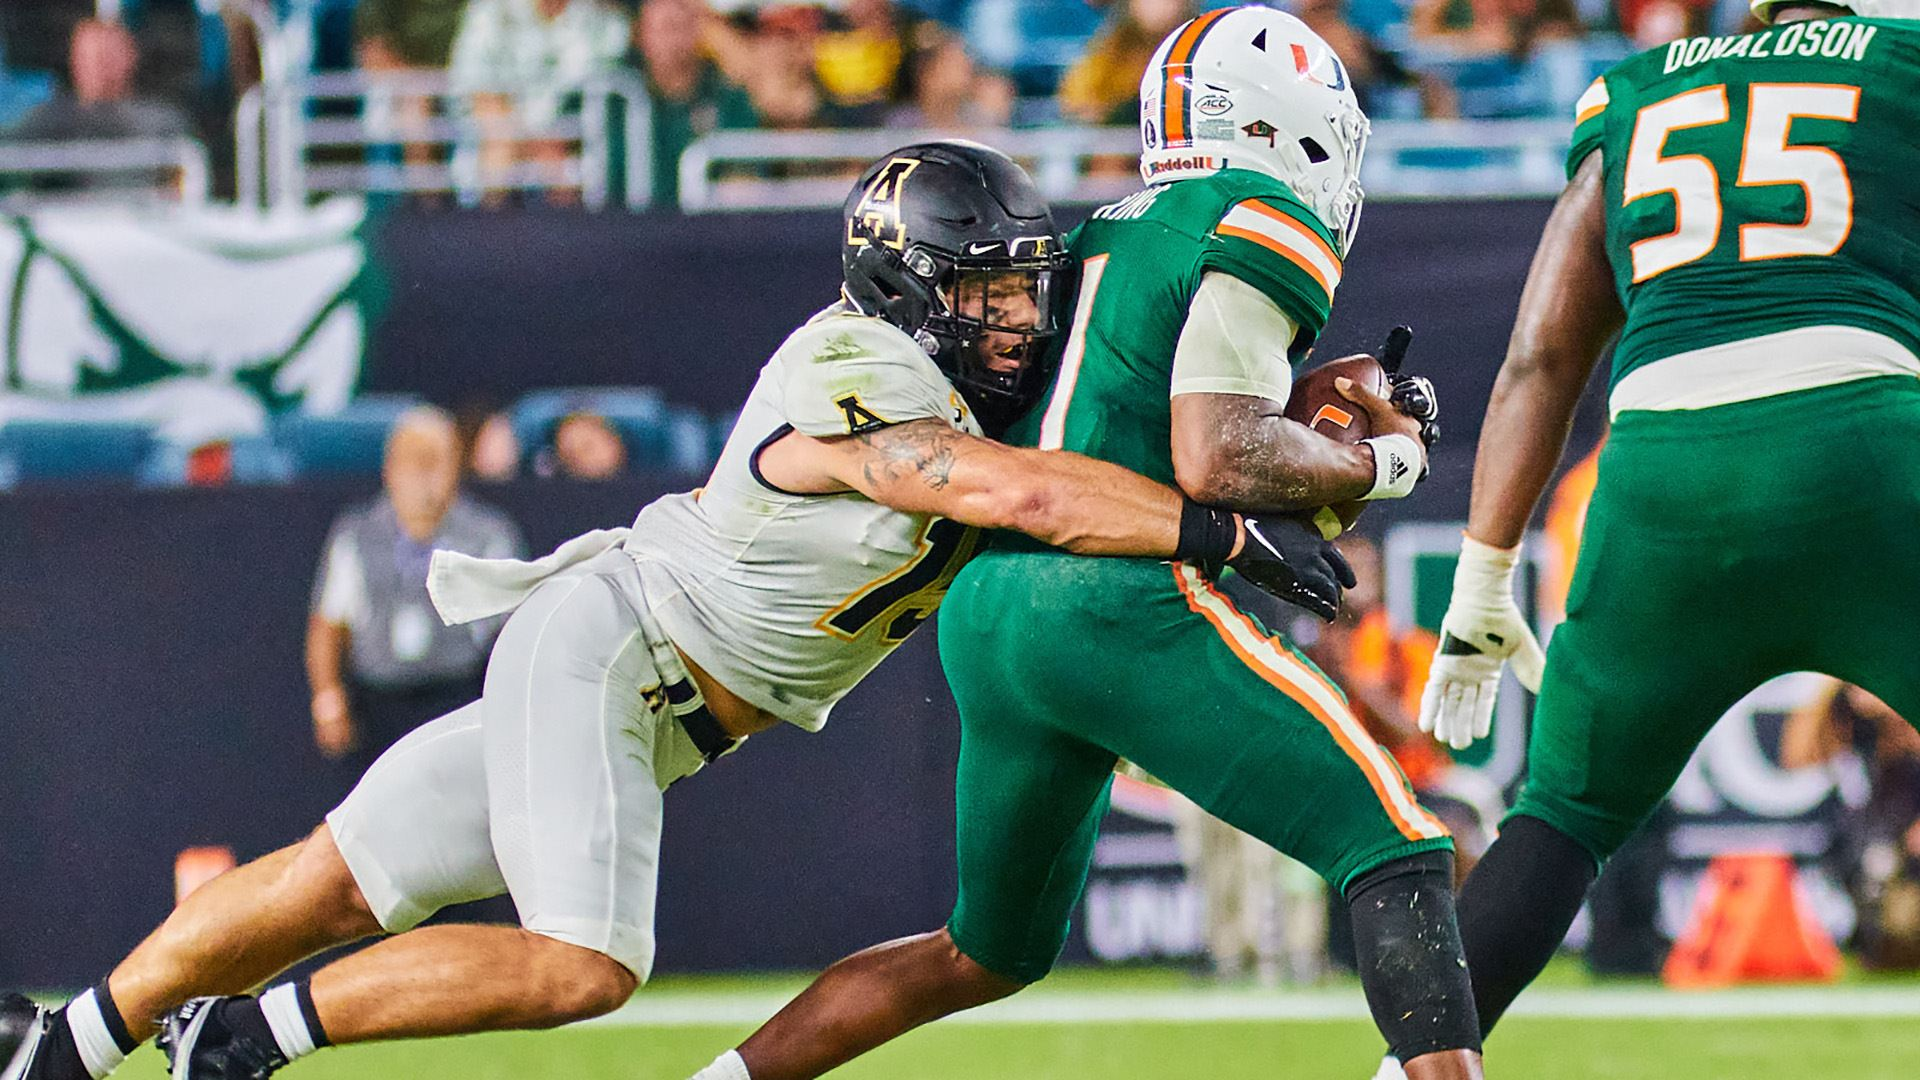 App State Rallies Late, Falls Short Against No. 22 Miami